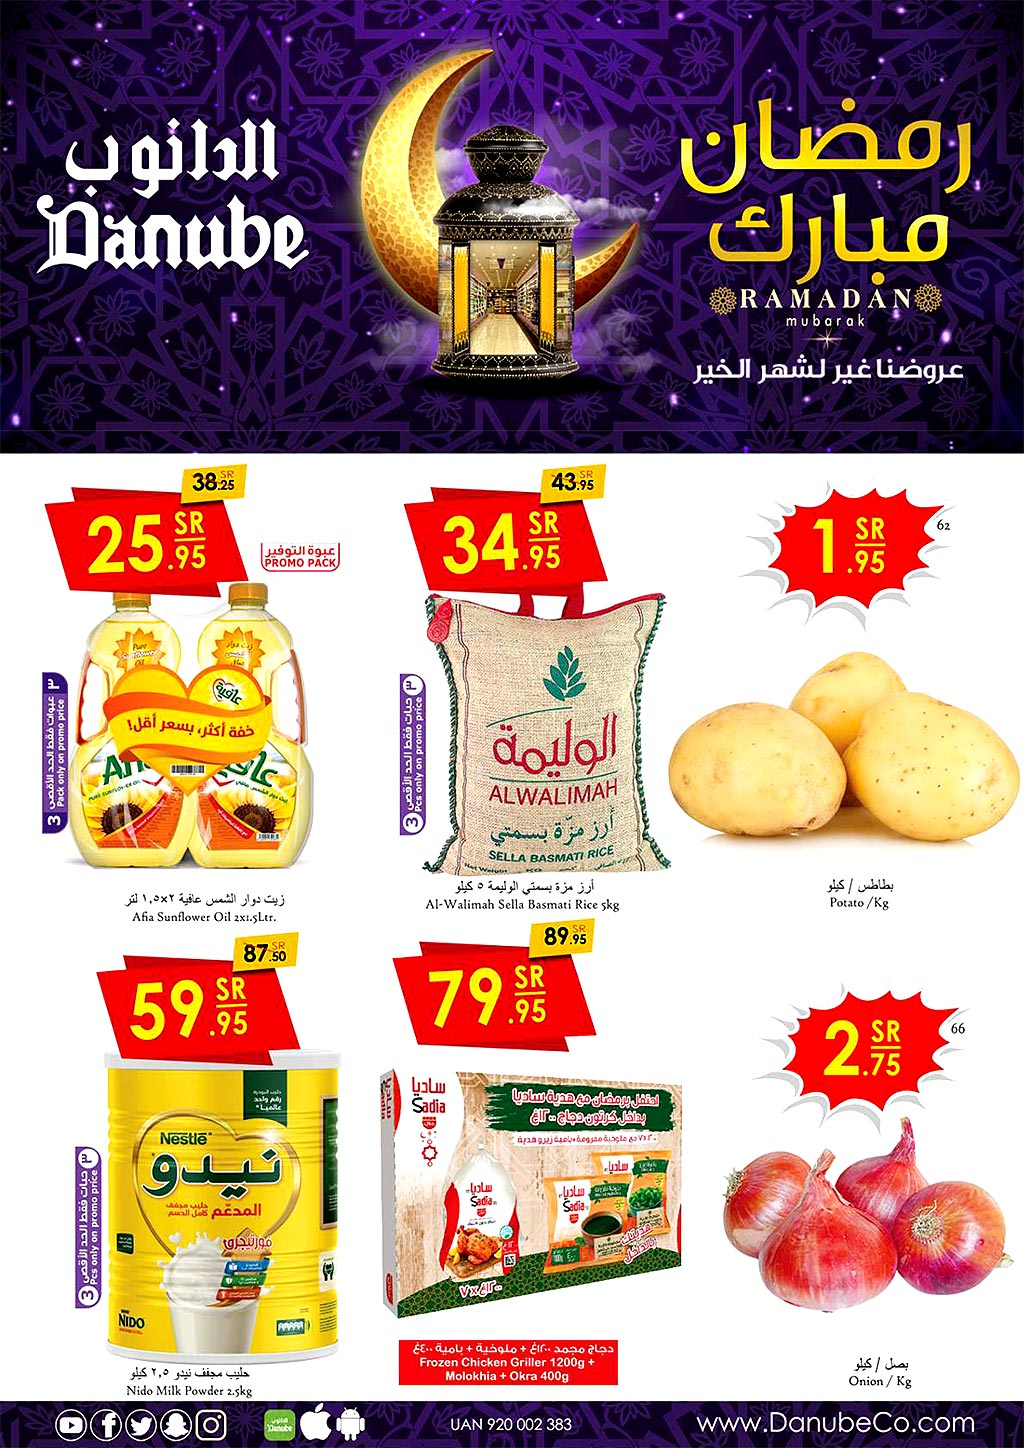 danube offers from 28apr to 4may 2021 page number 1 عروض الدانوب من 28 إبريل حتى 4 مايو 2021 صفحة رقم 1